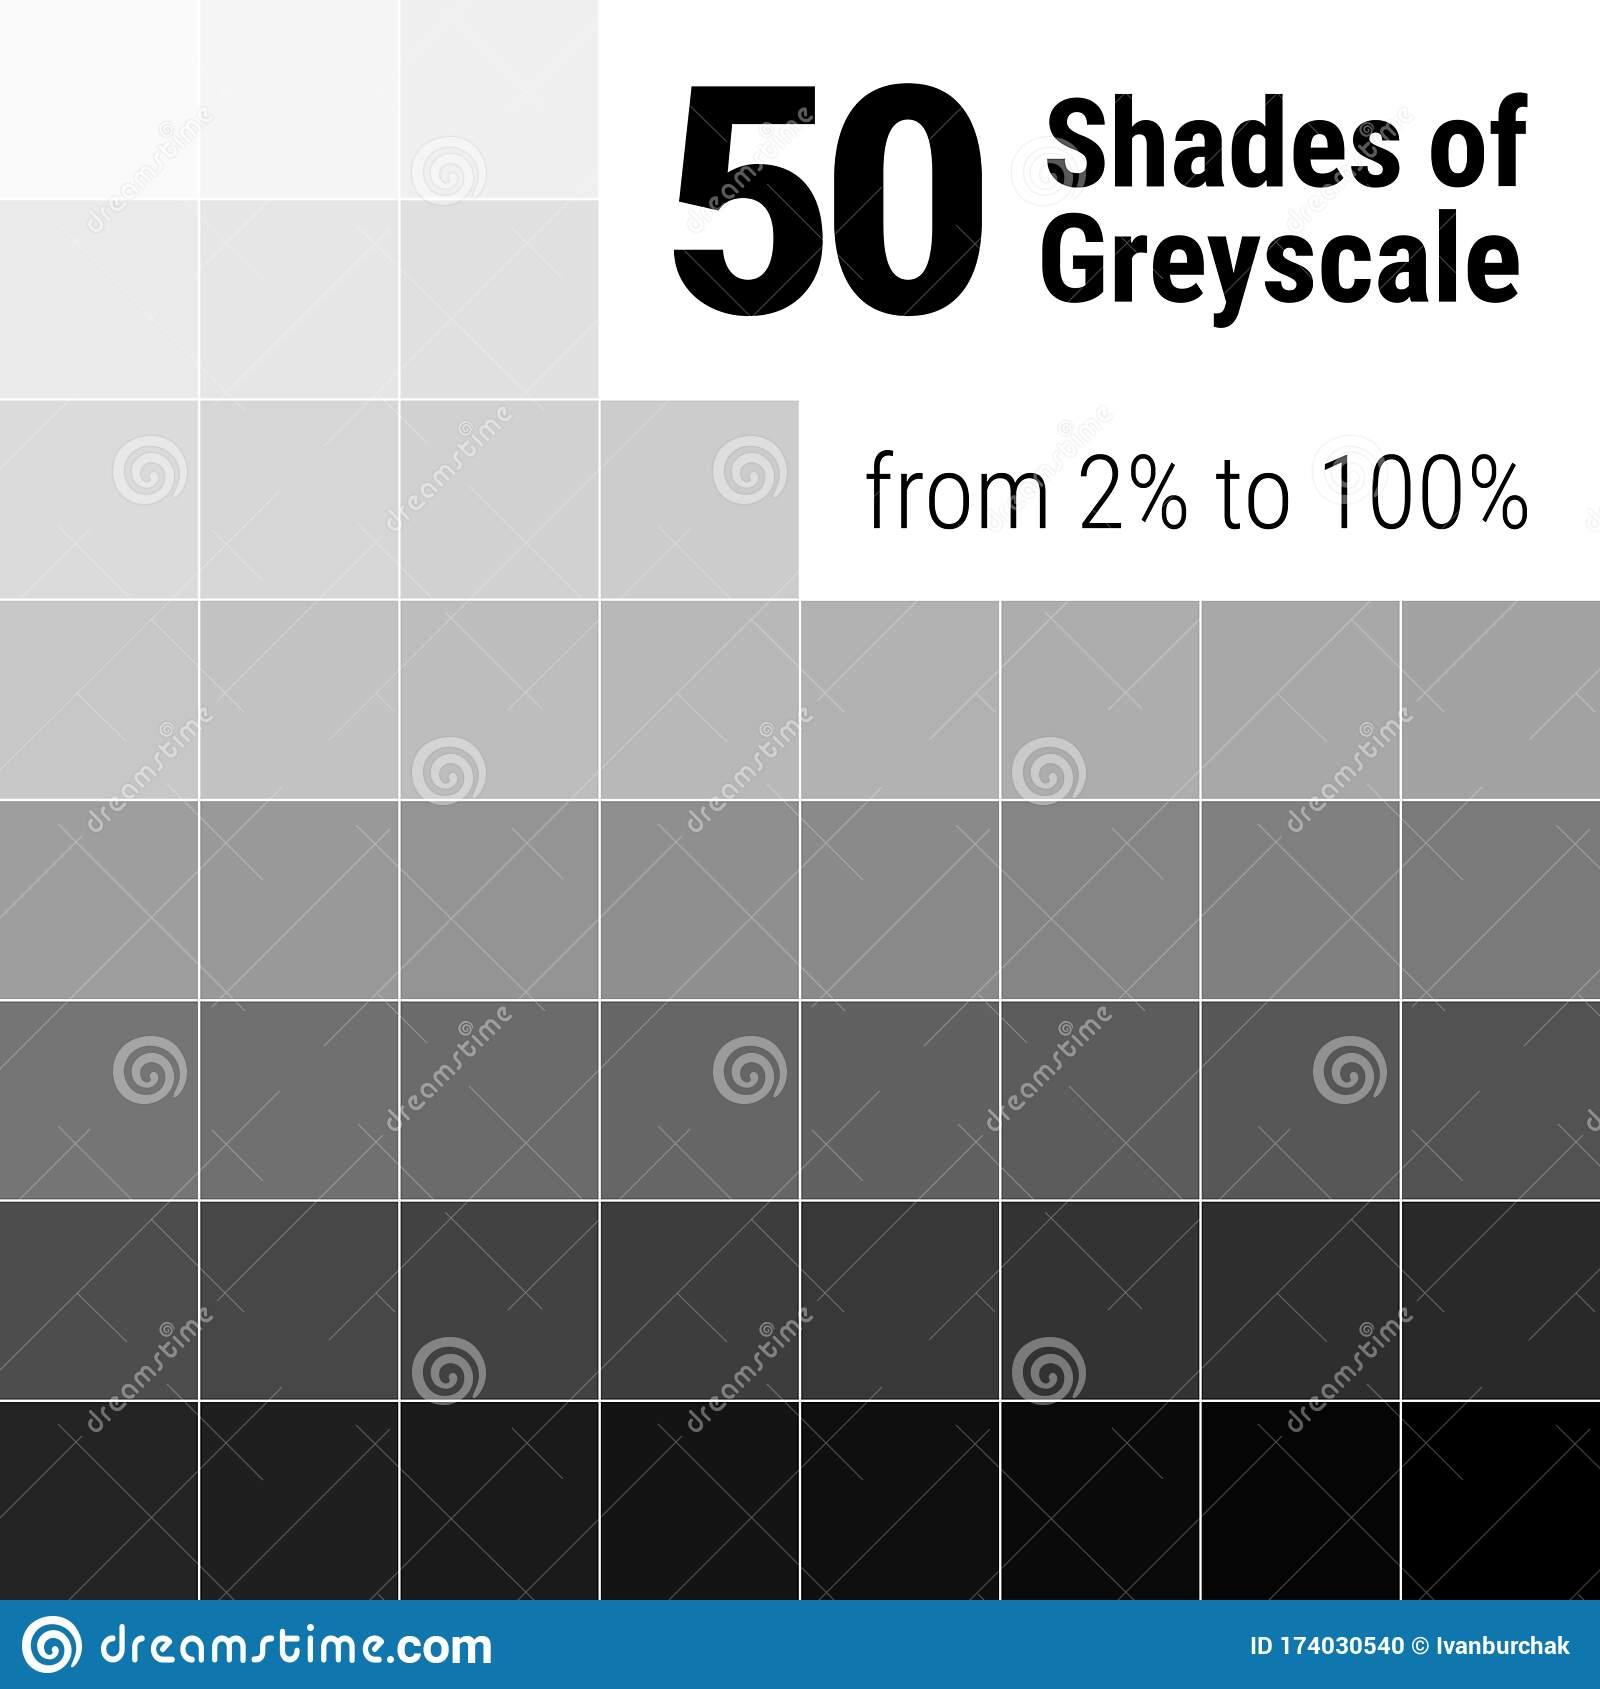 Greyscale Colors Stock Illustrations 160 Greyscale Colors Stock Illustrations Vectors Clipart Dreamstime